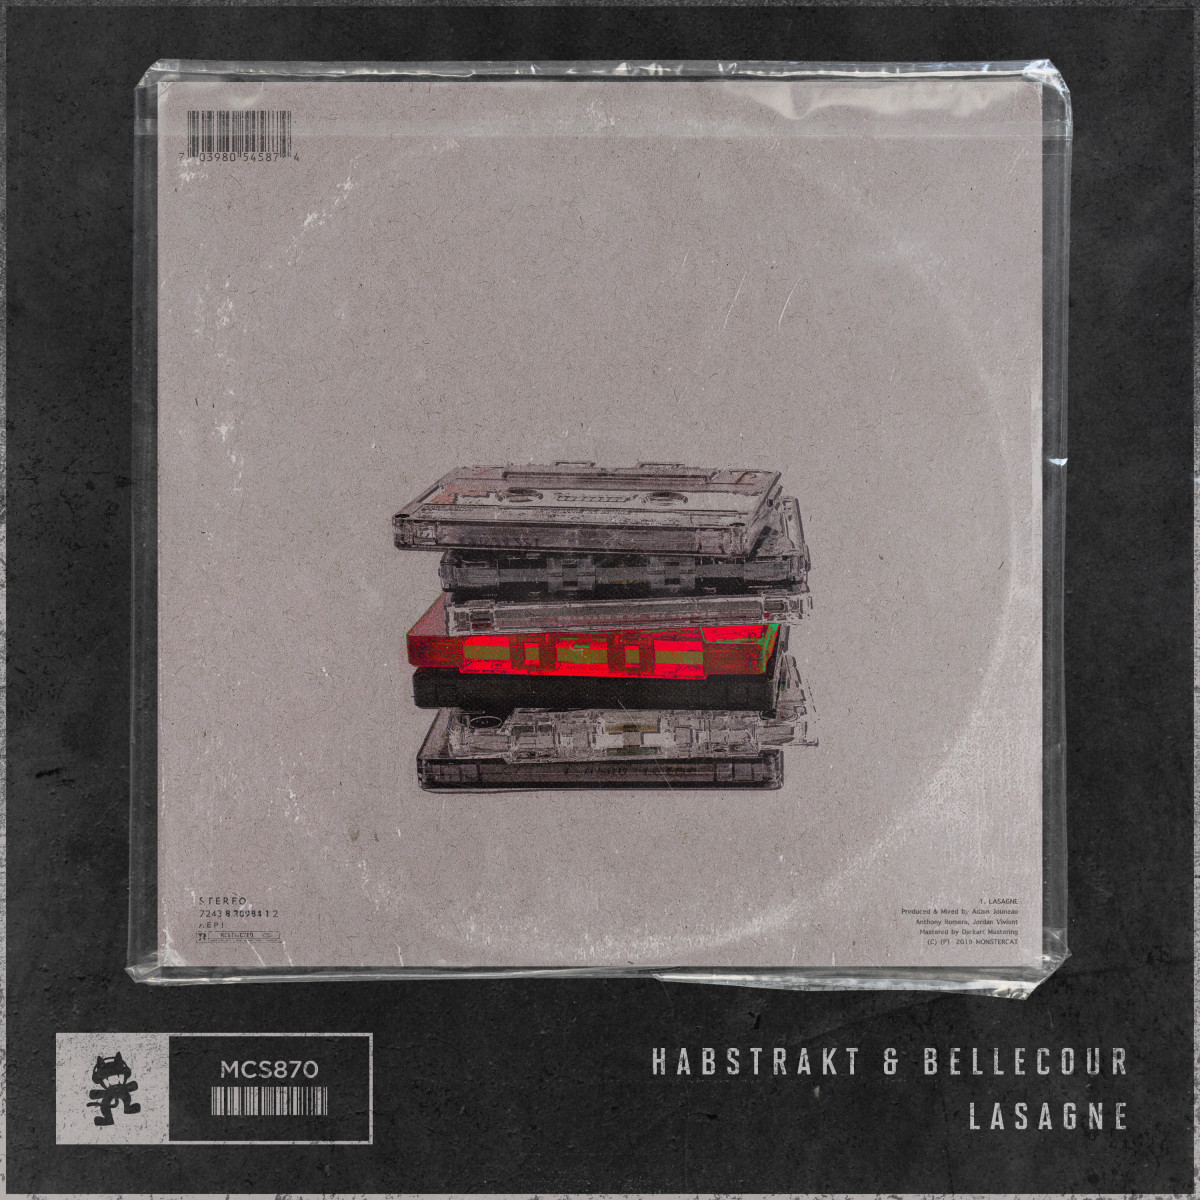 Habstrakt & Bellecour - Lasagne (Out Now on Monstercat) -- ALBUM ARTWORK